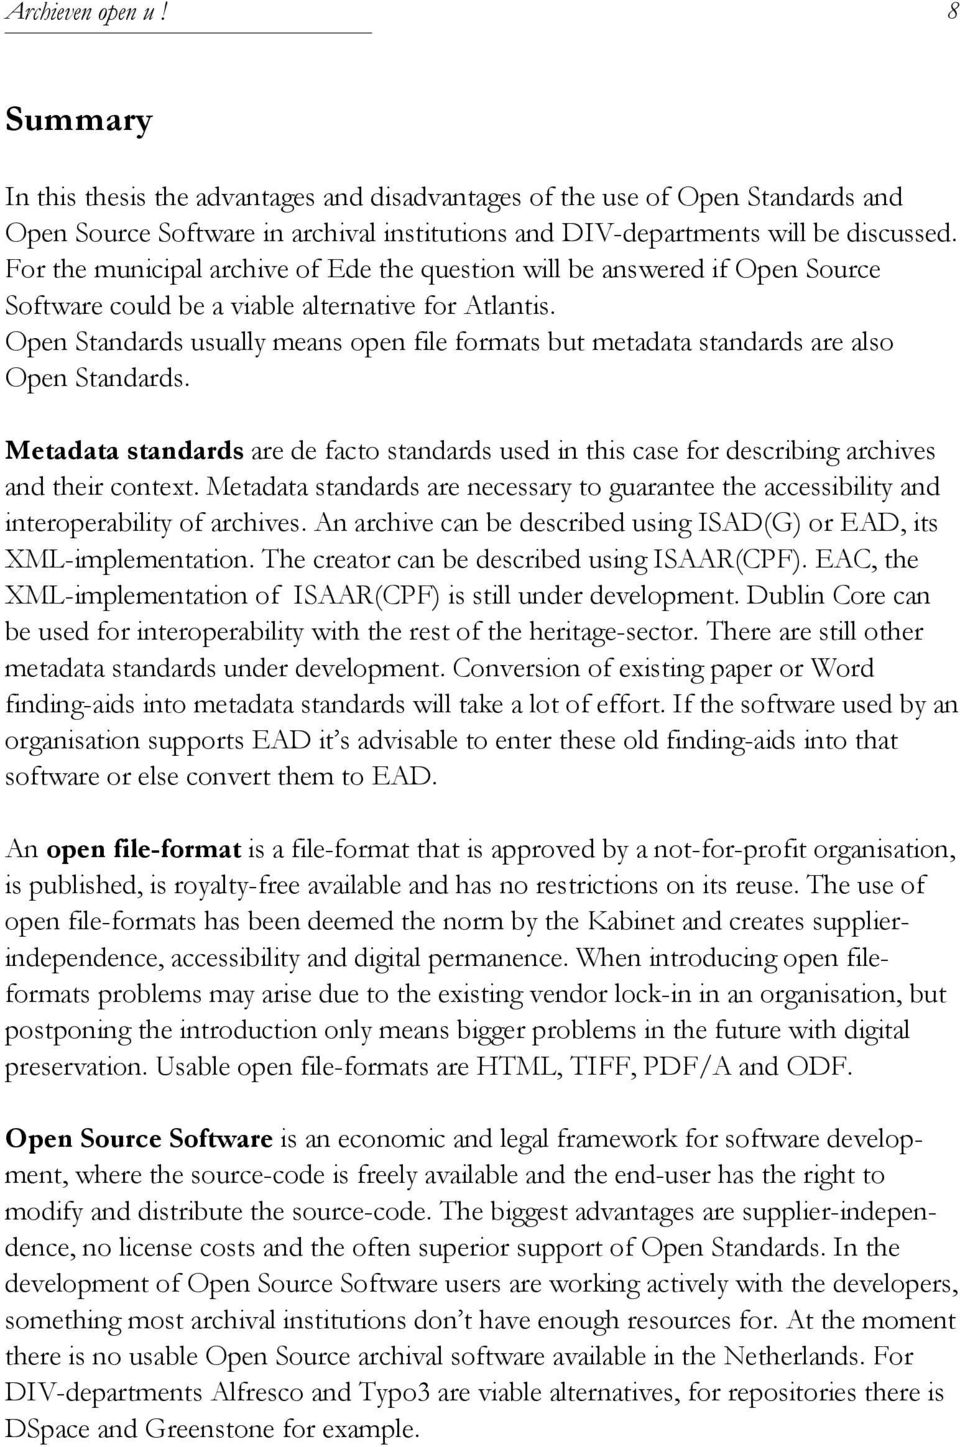 Open Standards usually means open file formats but metadata standards are also Open Standards. Metadata standards are de facto standards used in this case for describing archives and their context.